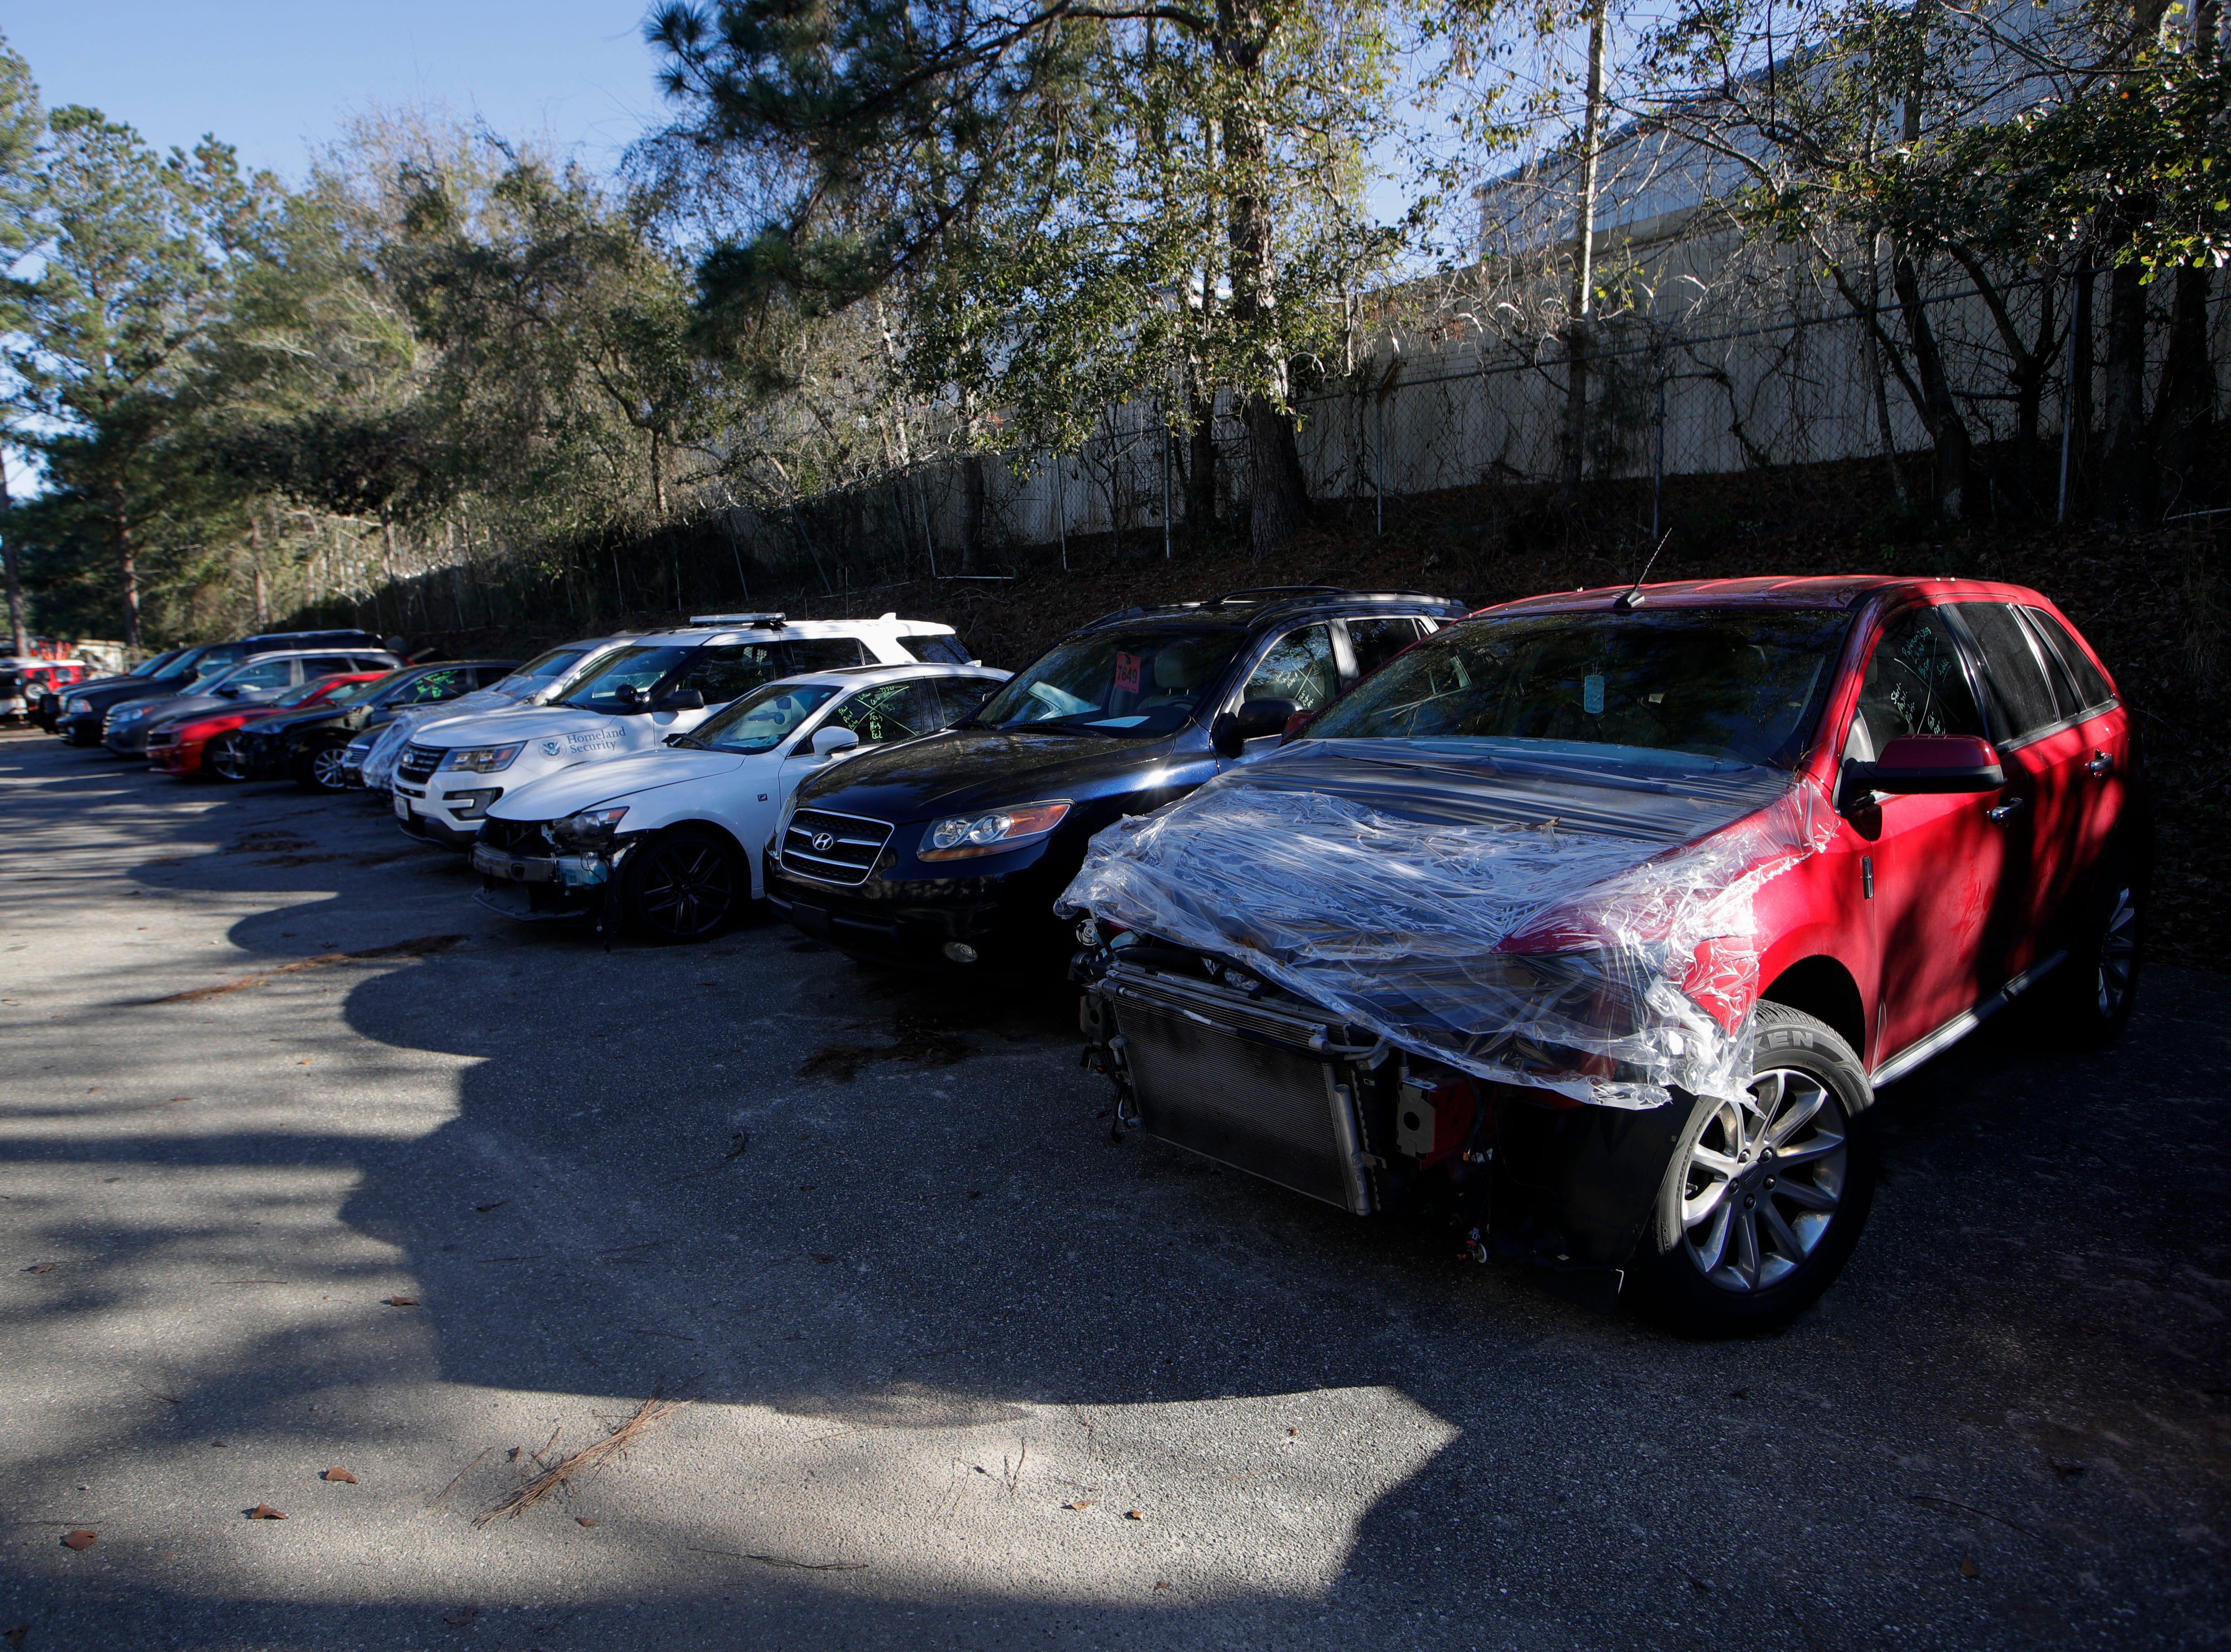 More than twenty cars are lined up behind Body Builders Paint and Body Inc. waiting to be repaired after Hurricane Michael in October has left the business with a backlog of work.